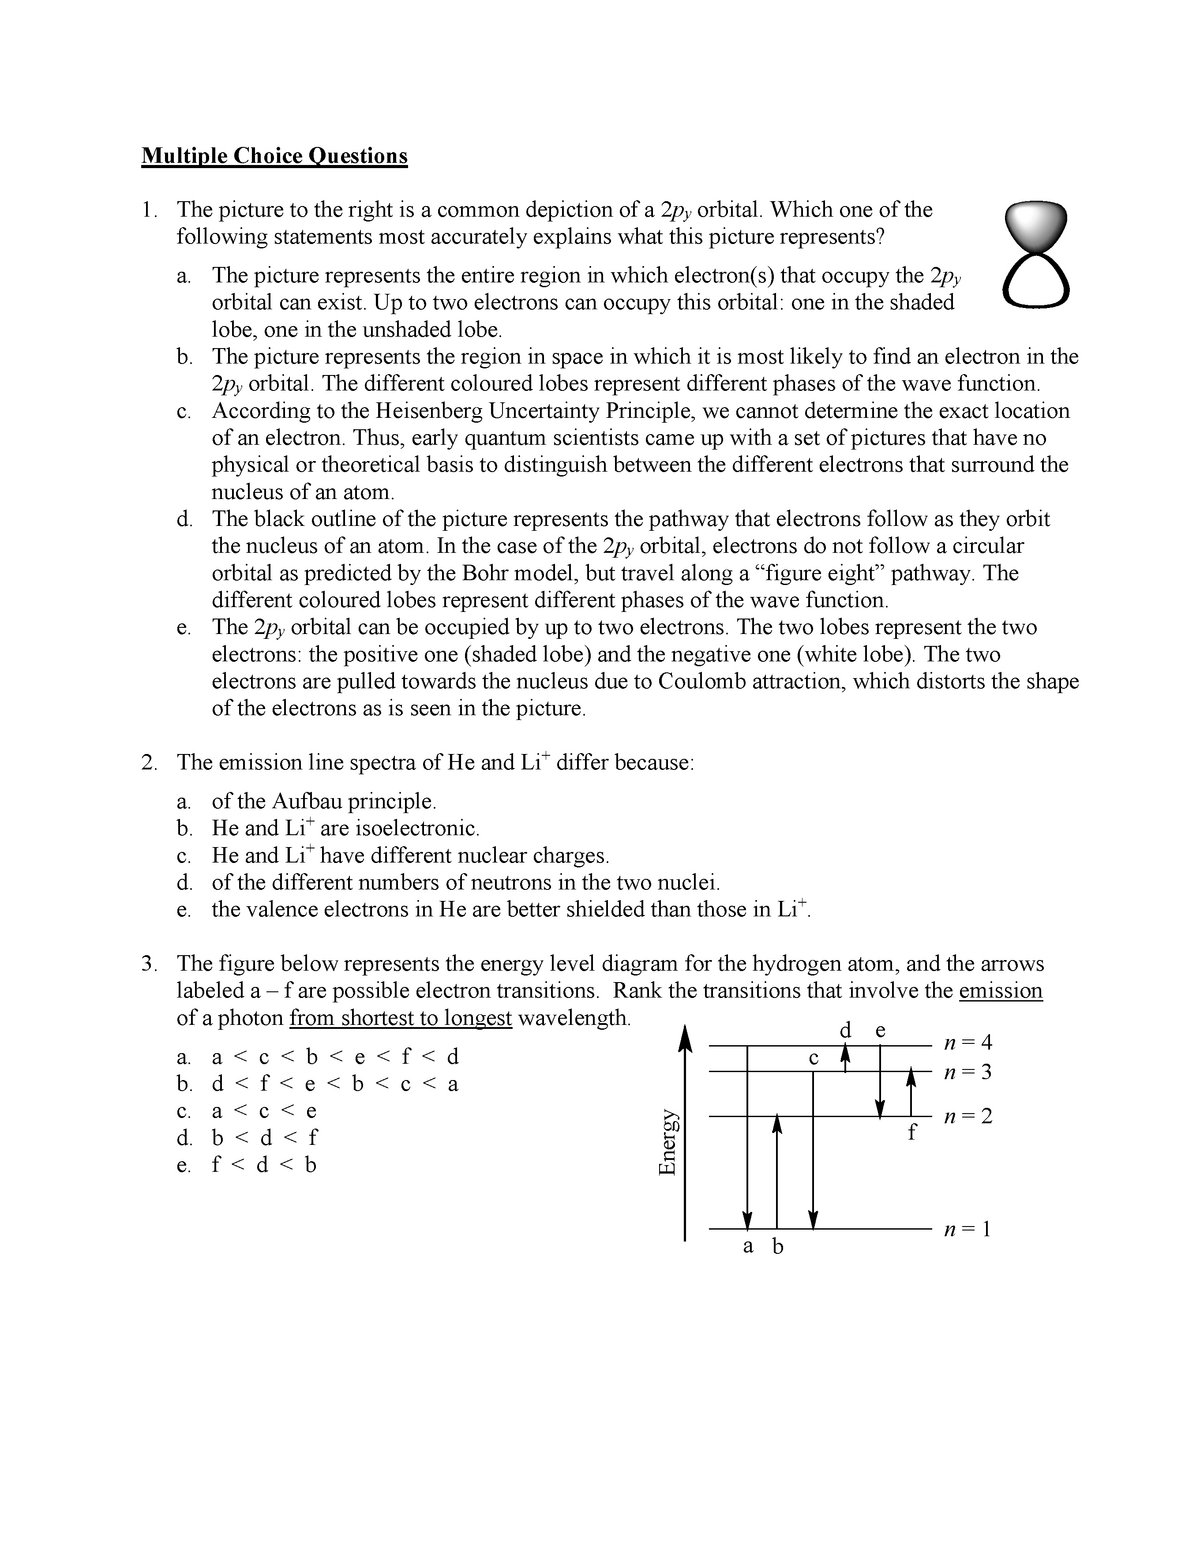 Final Exam 12 October, questions - CHEM 1300 - U of M - StuDocu